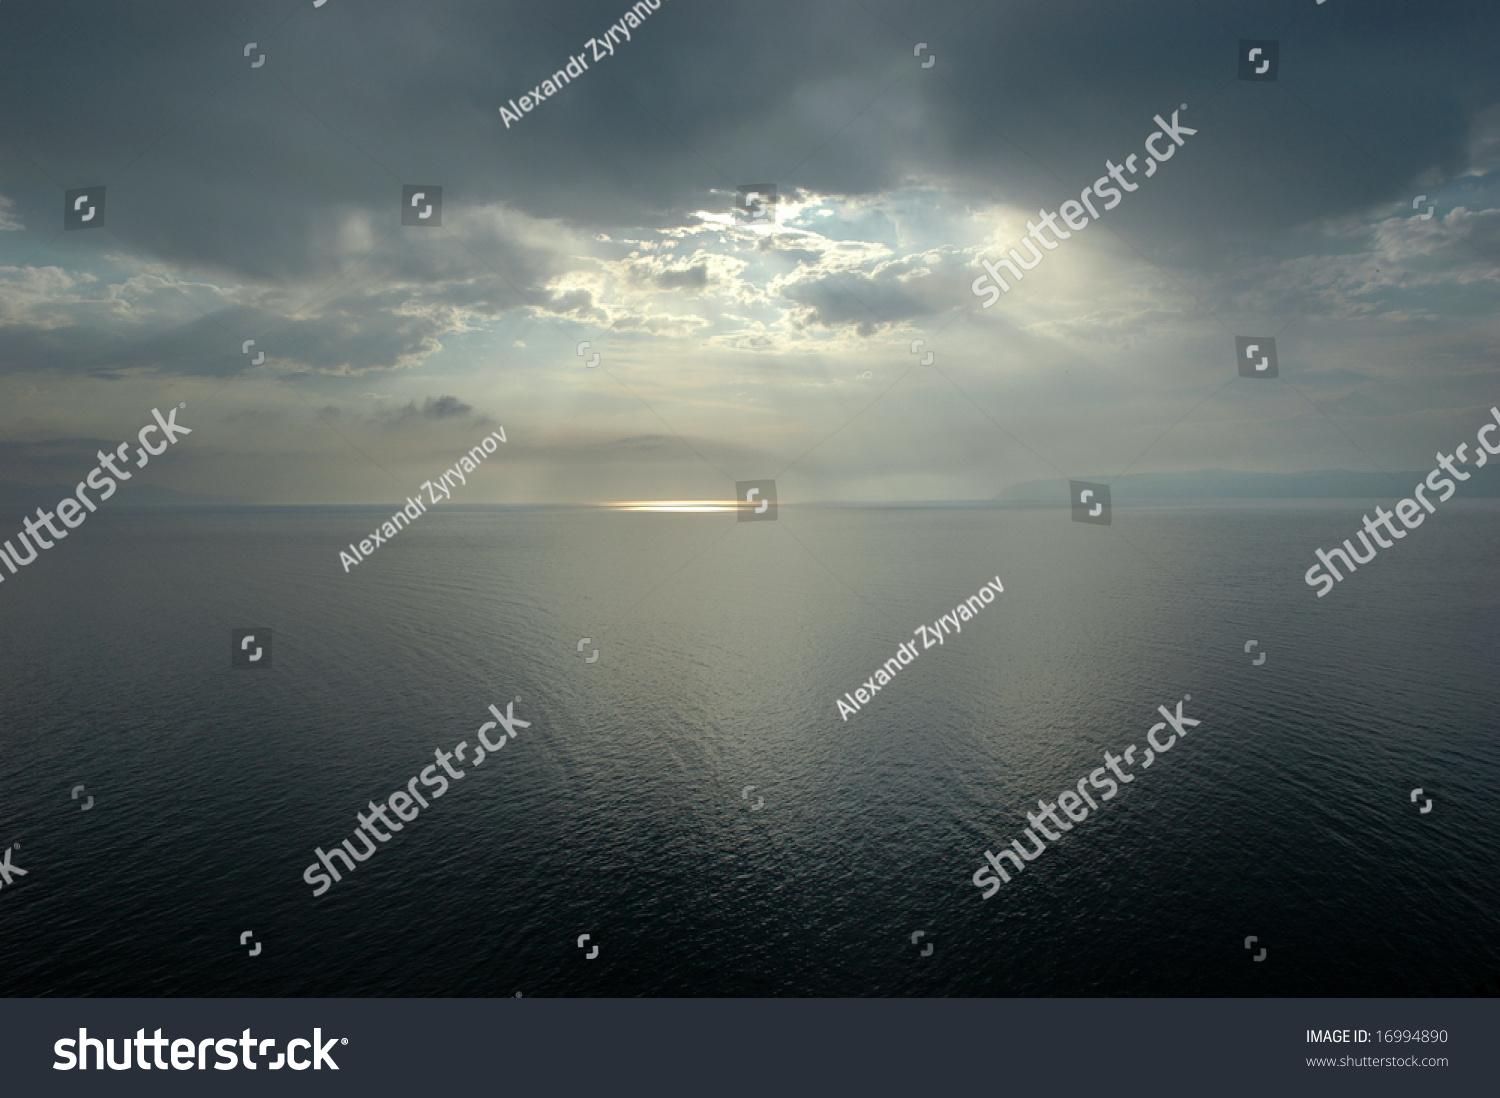 stock-photo-sea-and-sun-lighting-through